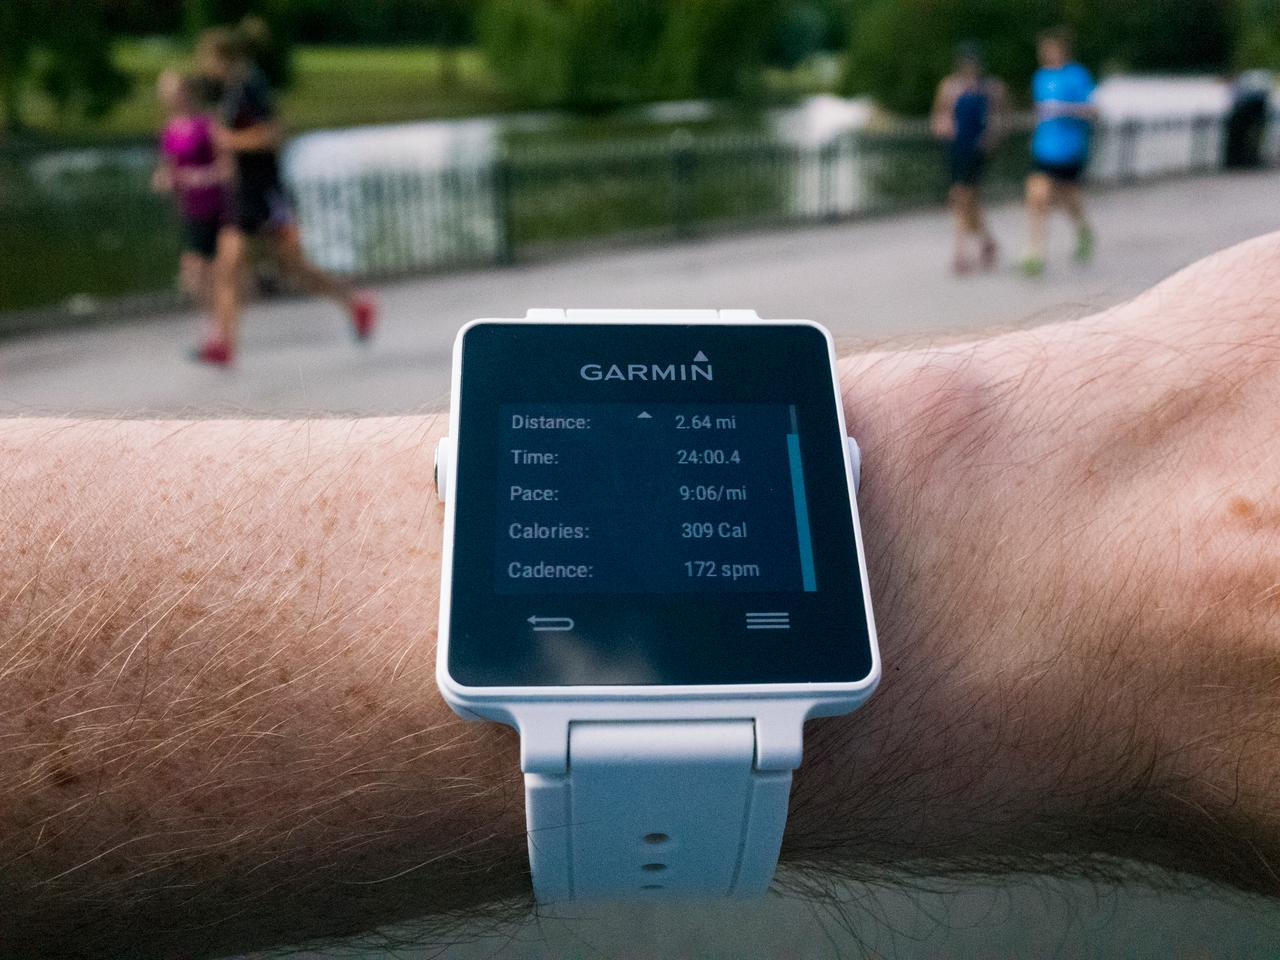 The Garmin vivoactive can monitor a range of exercise specific data whether running, swimming or playing golf